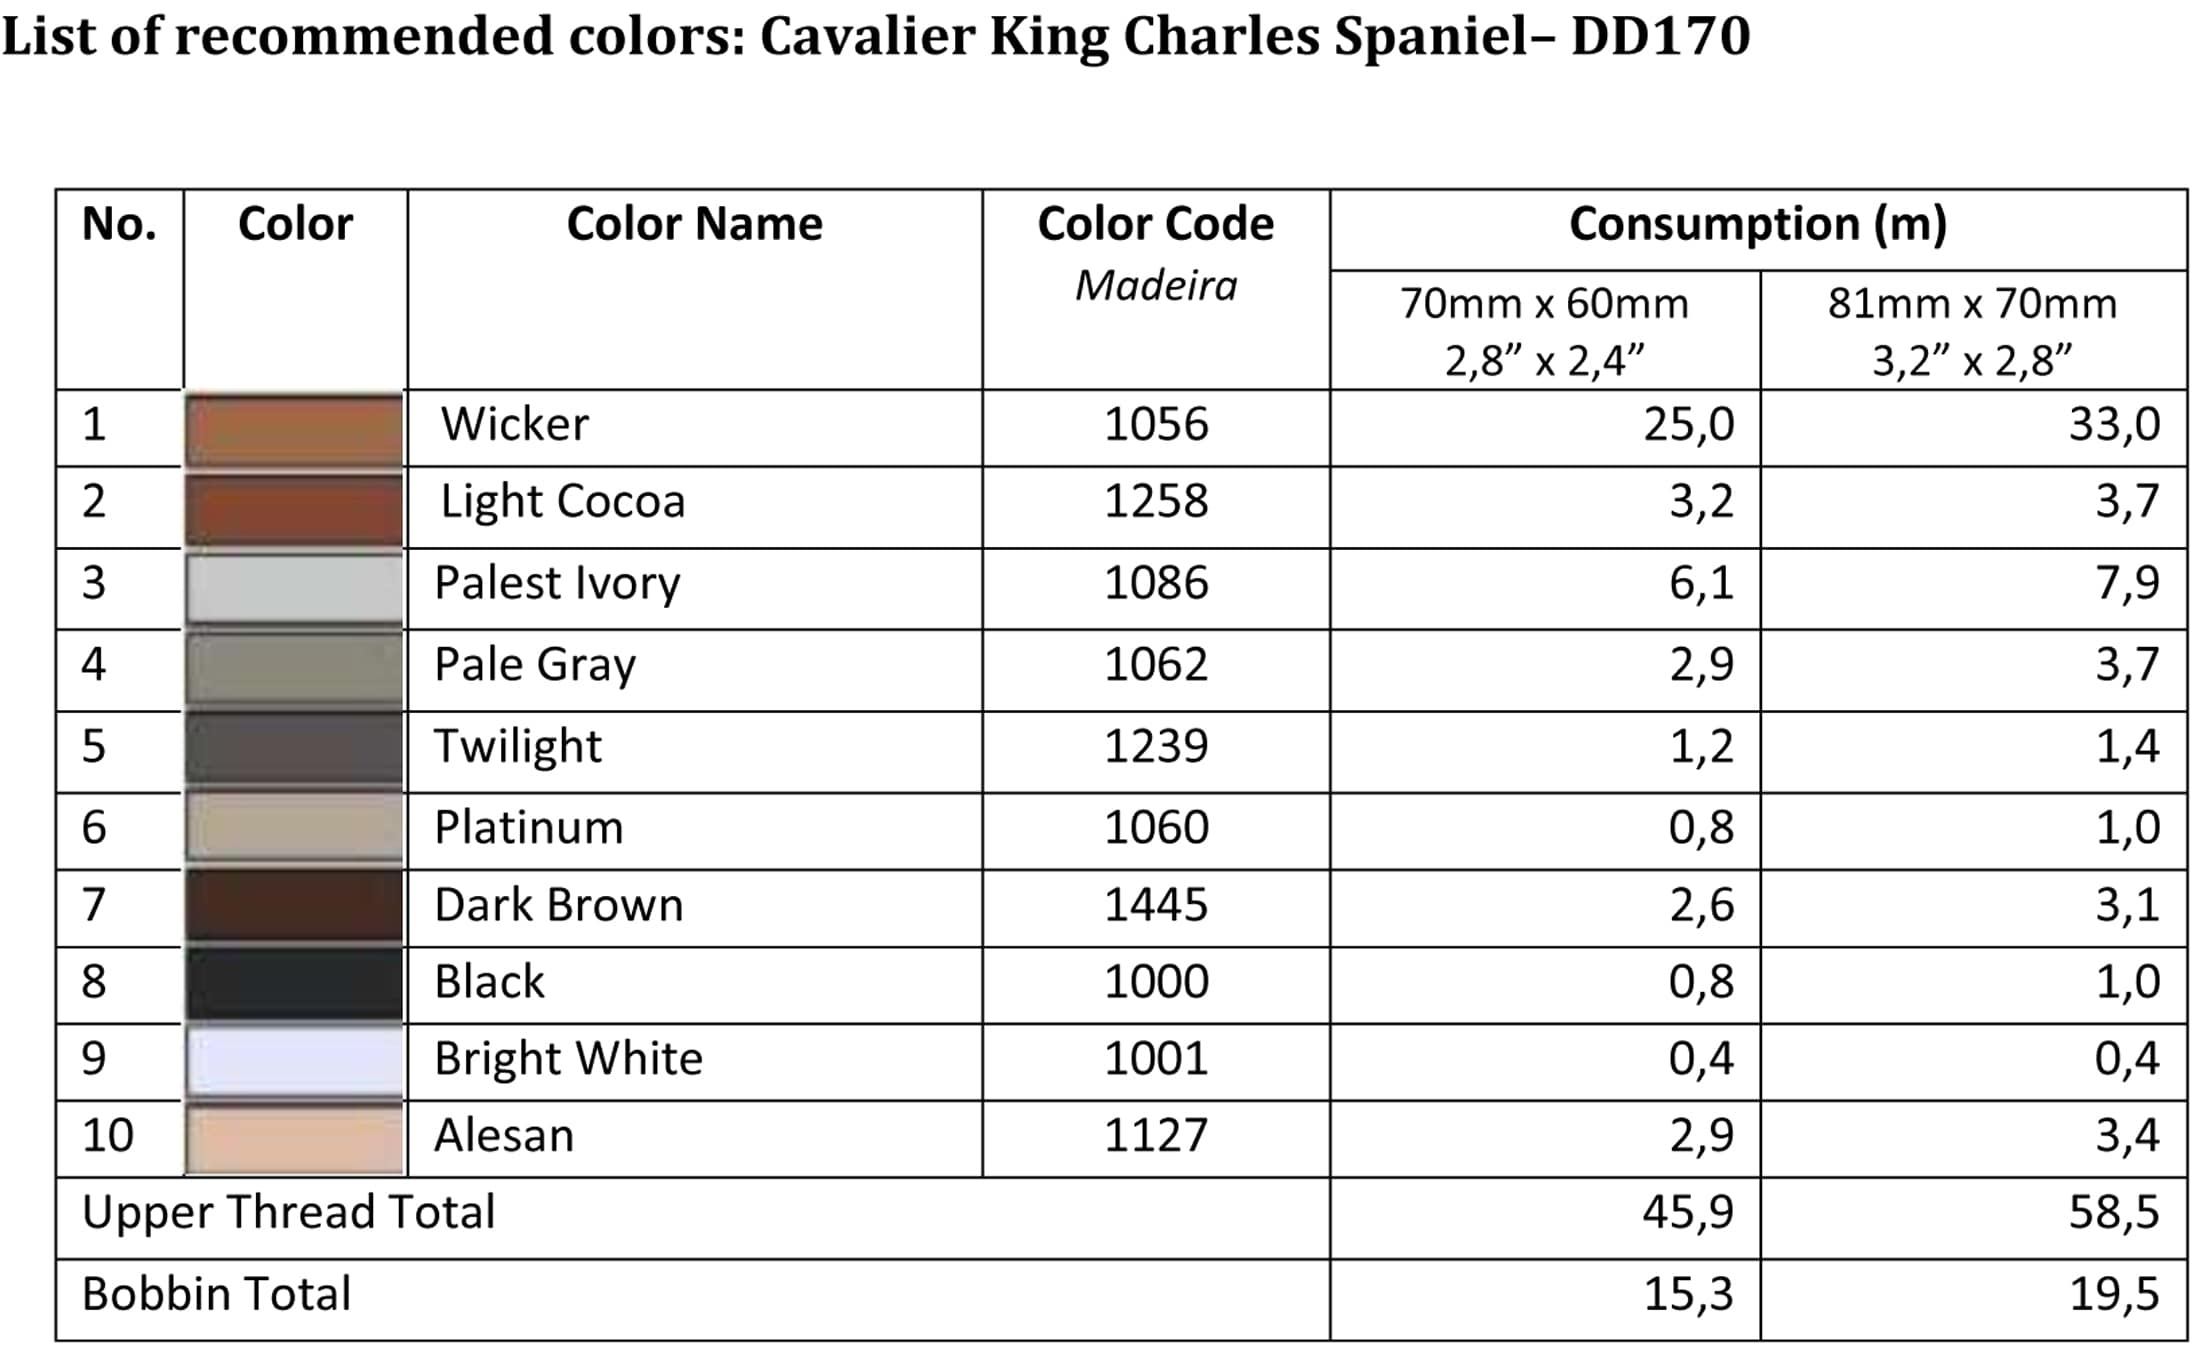 List of recommended colors - DD170